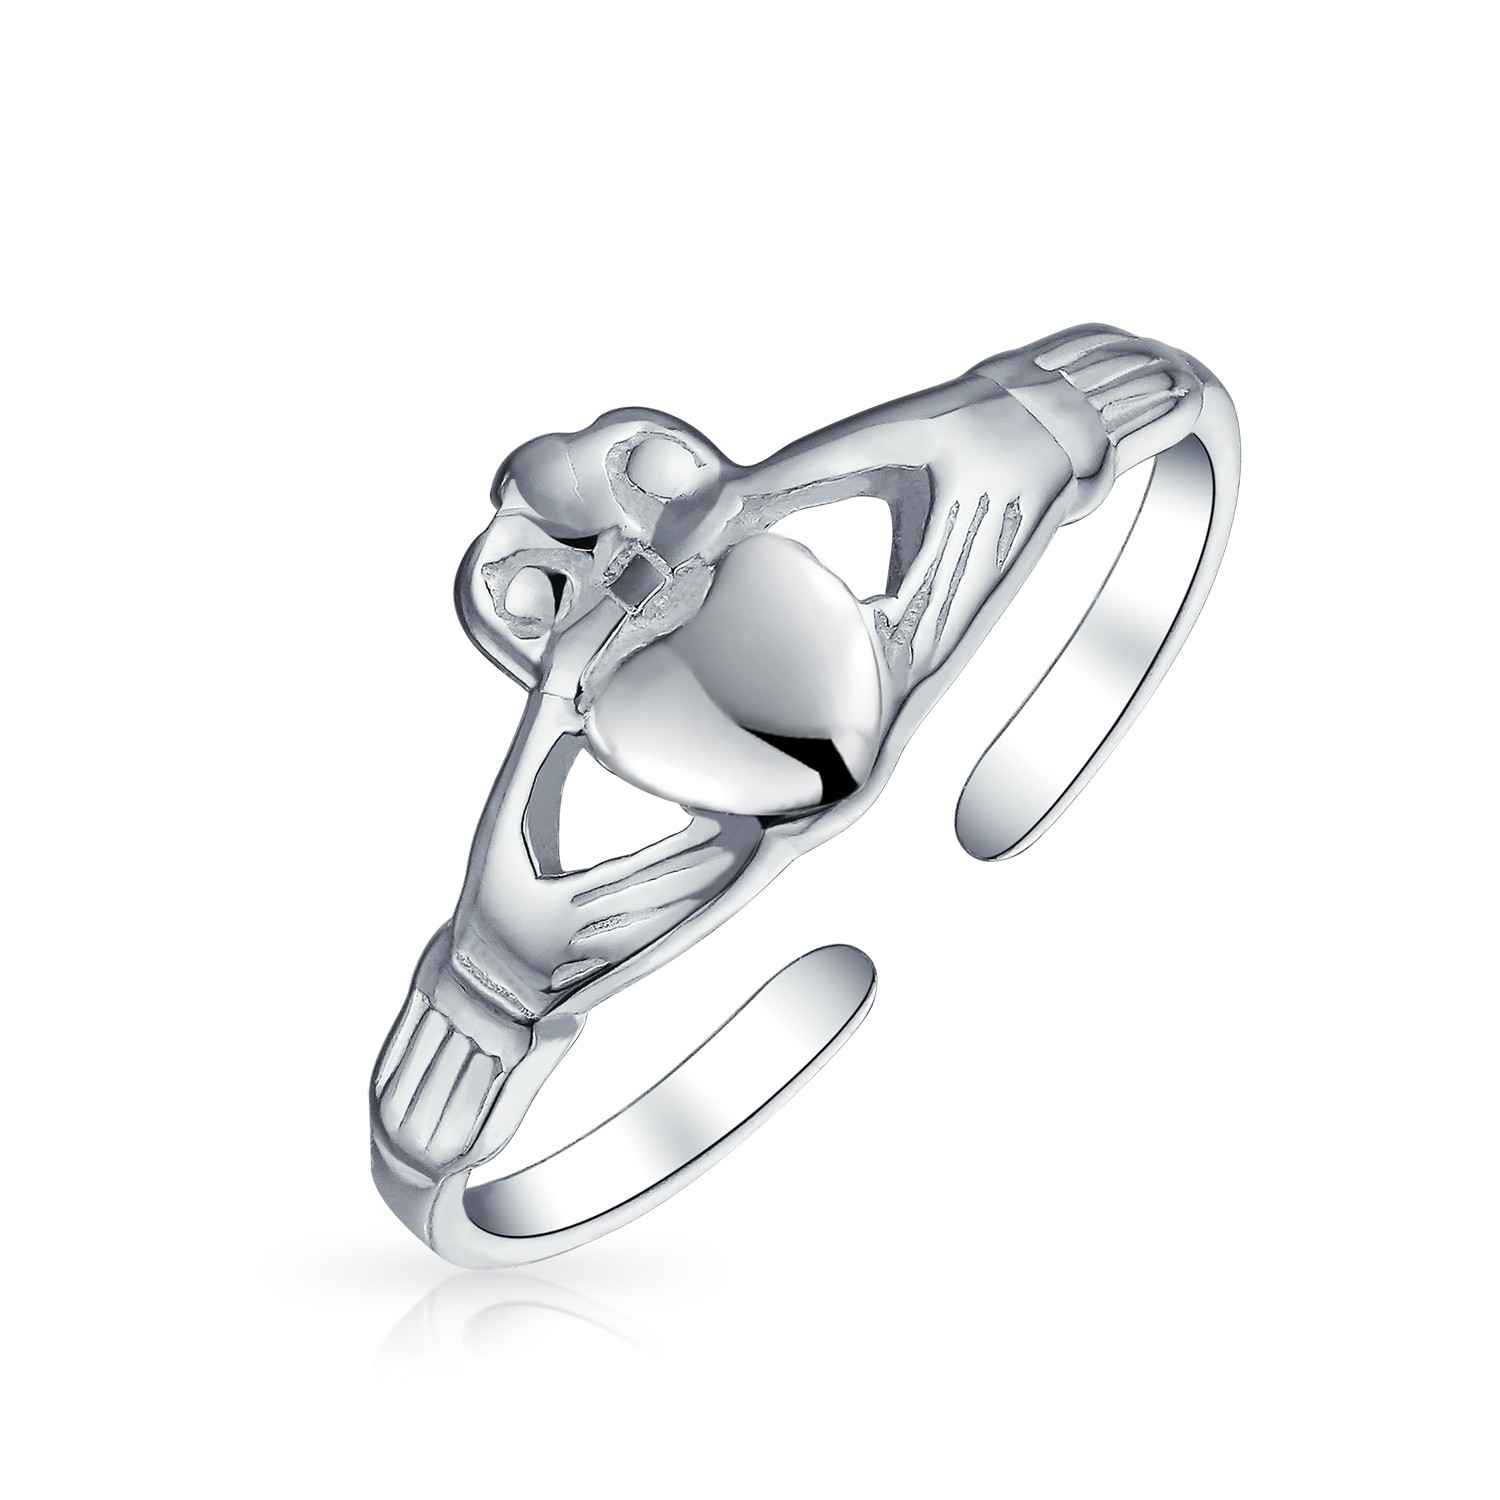 925 Silver Celtic Midi Ring Adjustable Claddagh Heart Toe Rings With Regard To Recent Diamond Toe Rings (Gallery 6 of 15)